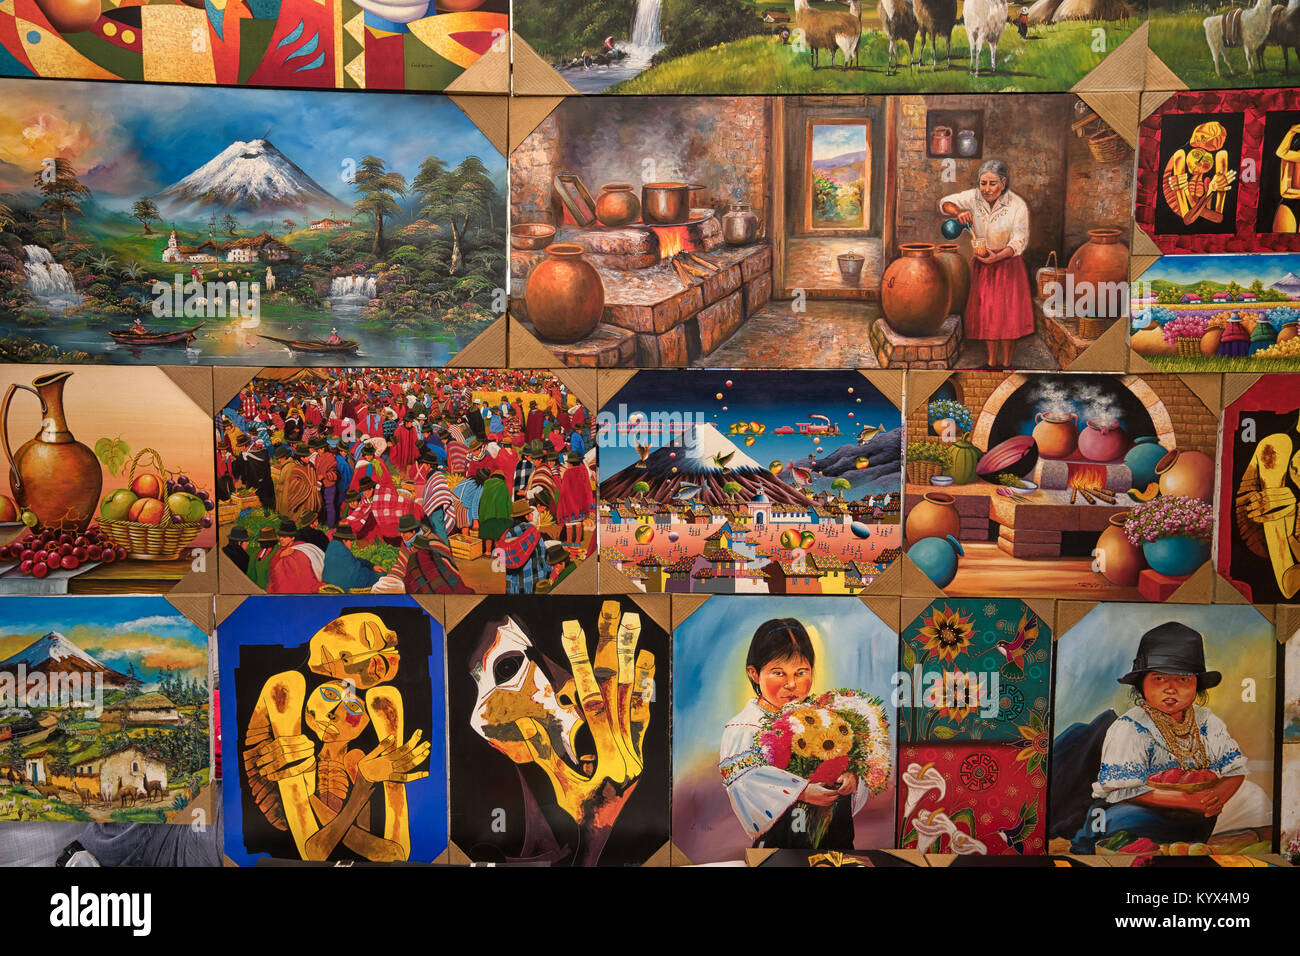 Otavalo, Ecuador - January 13, 2018: closeup of colourful indigenous paintings in the popular artisan market - Stock Image